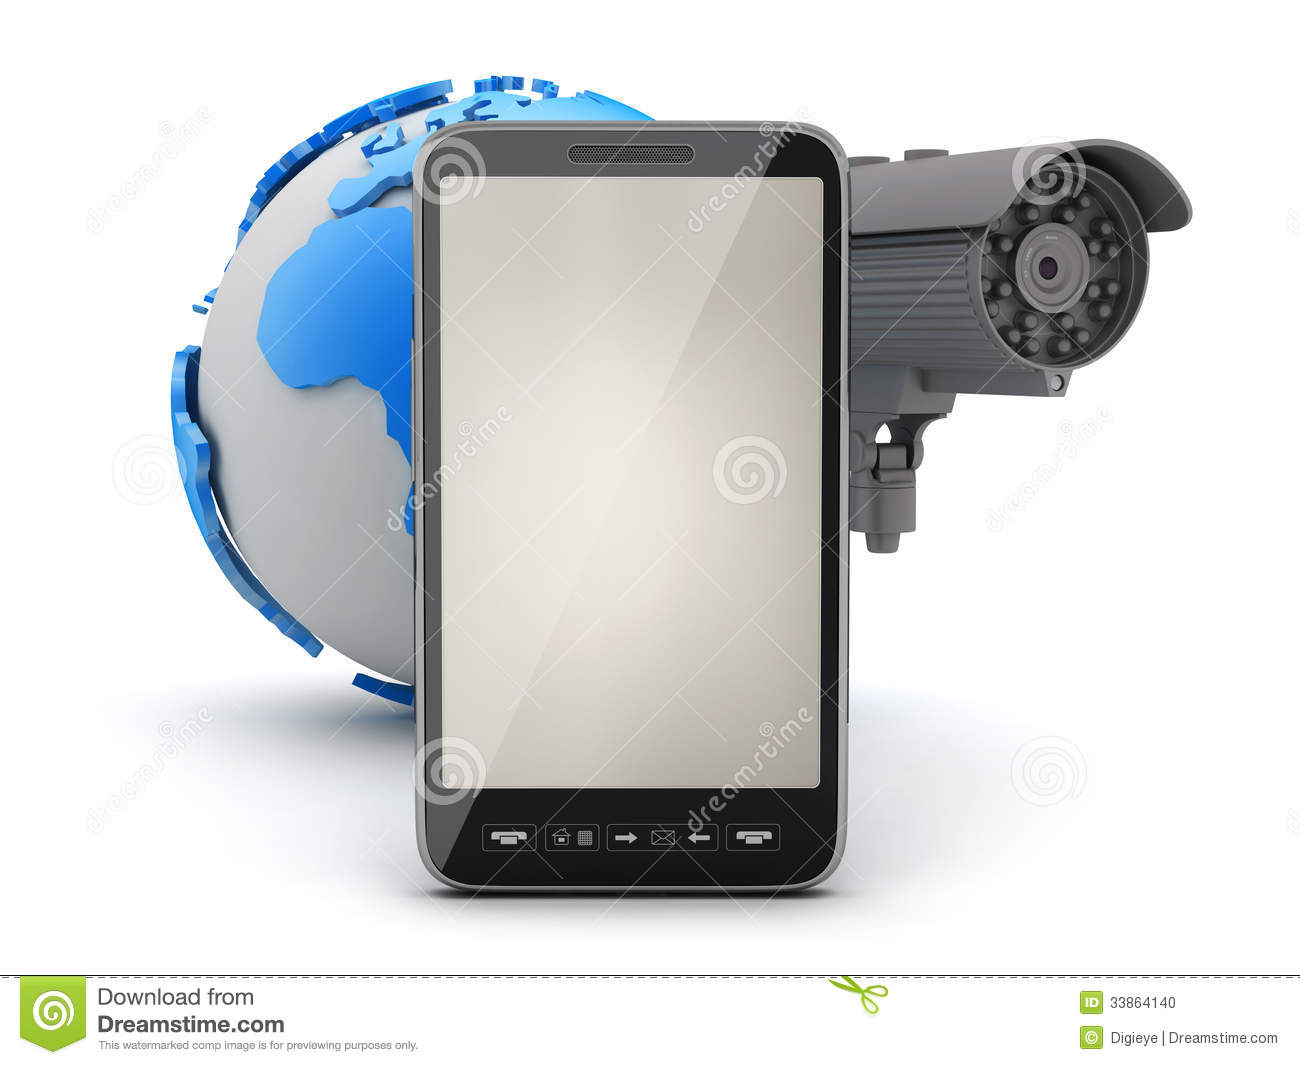 surveillance camera mobile phone and earth globe stock photography 34112156. Black Bedroom Furniture Sets. Home Design Ideas